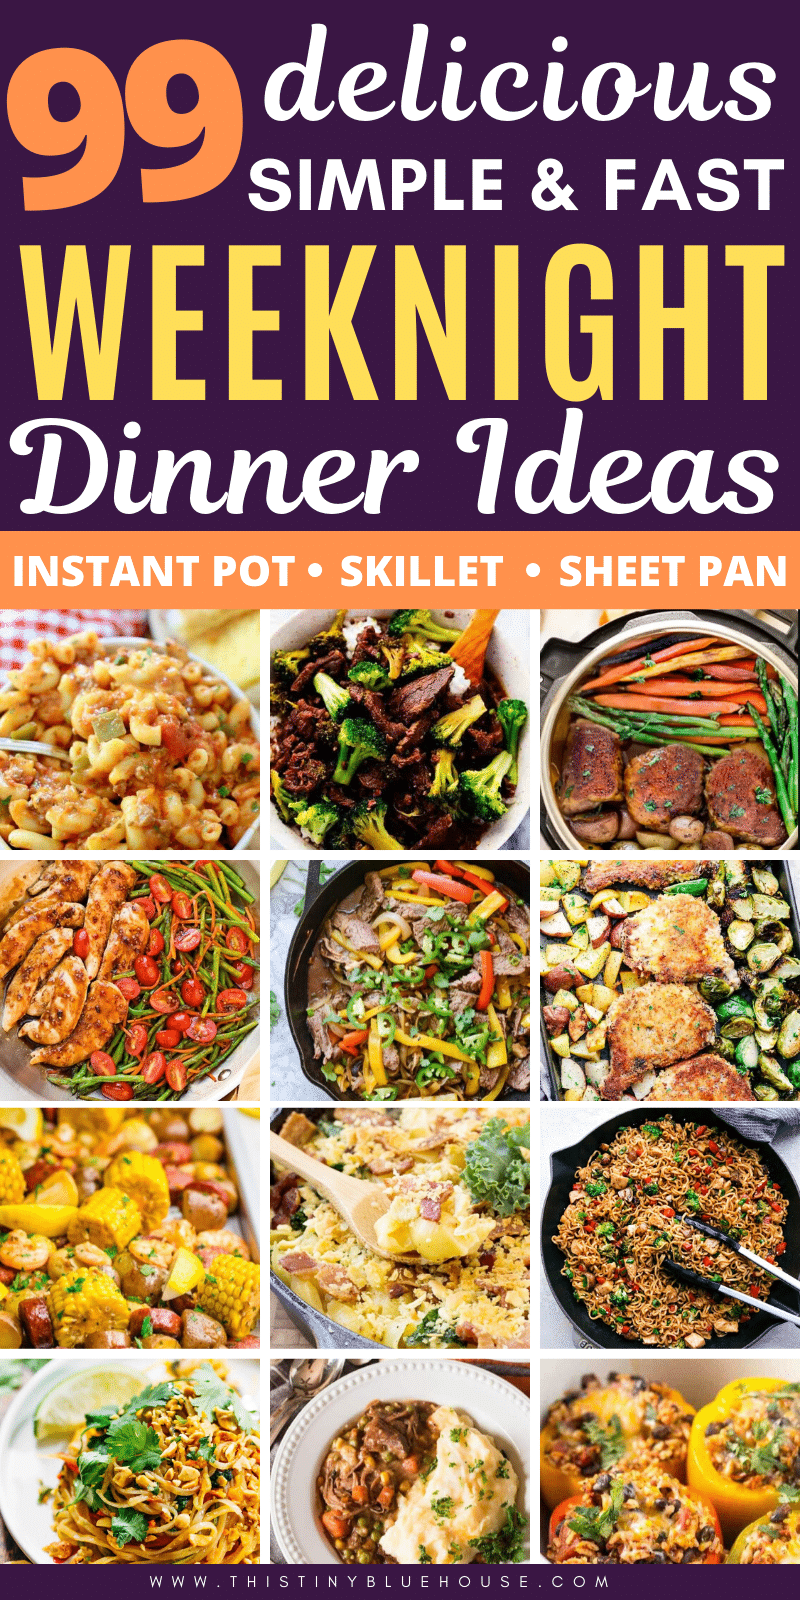 Get dinner on the table in a flash with these 99 delicious super simple and epically fast weeknight dinner ideas. #weeknightdinnerideas #easysupperideas #bestsupperideasforfamilies #besteasyweeknightdinners #bestsimpledinners #busynightdinnerideas #schoolnightsupperideas